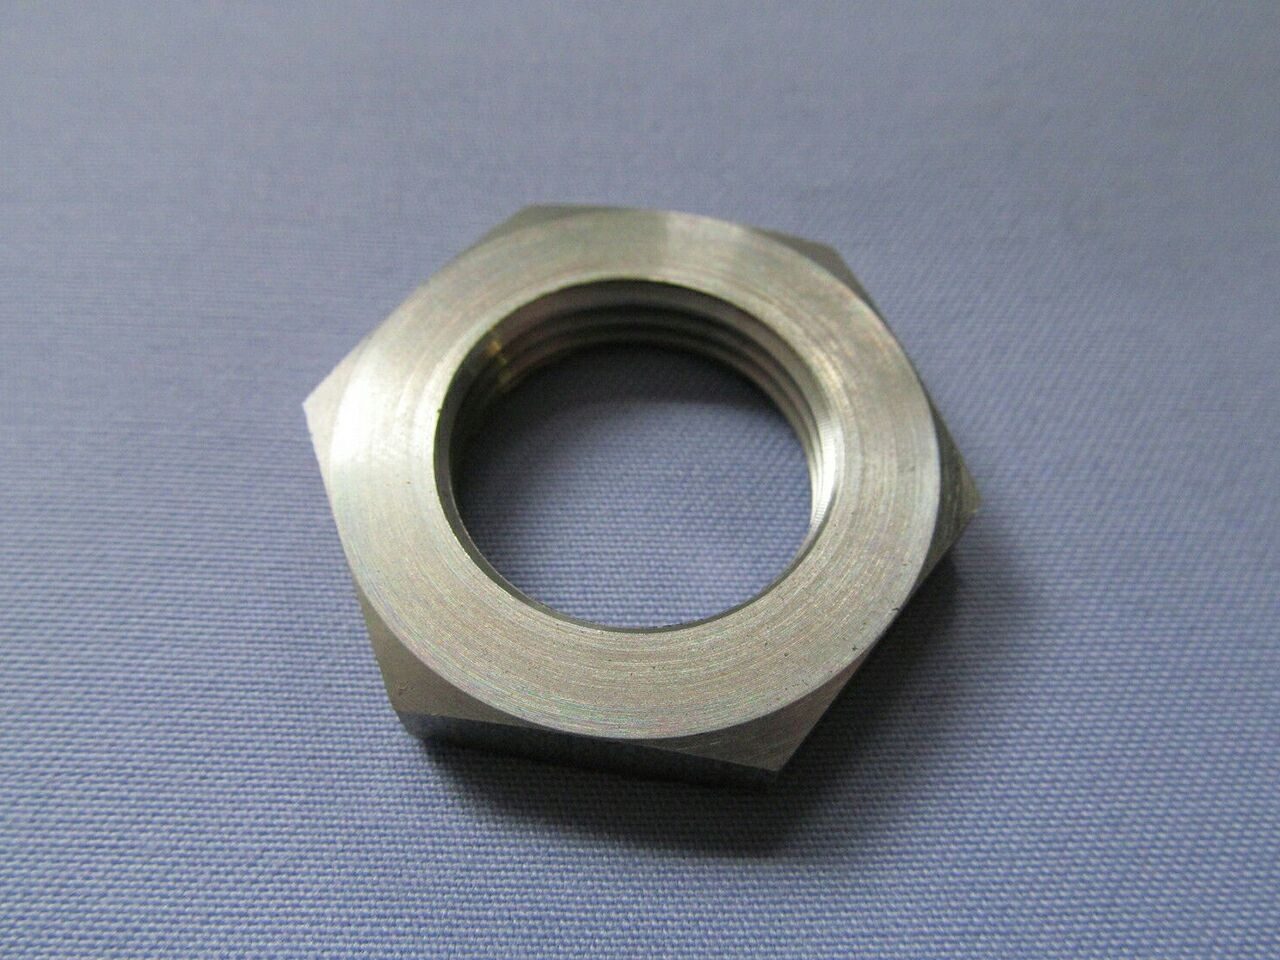 067781 Norton Commando fork yoke steering stem bottom lock nut - Classic Bike Spares